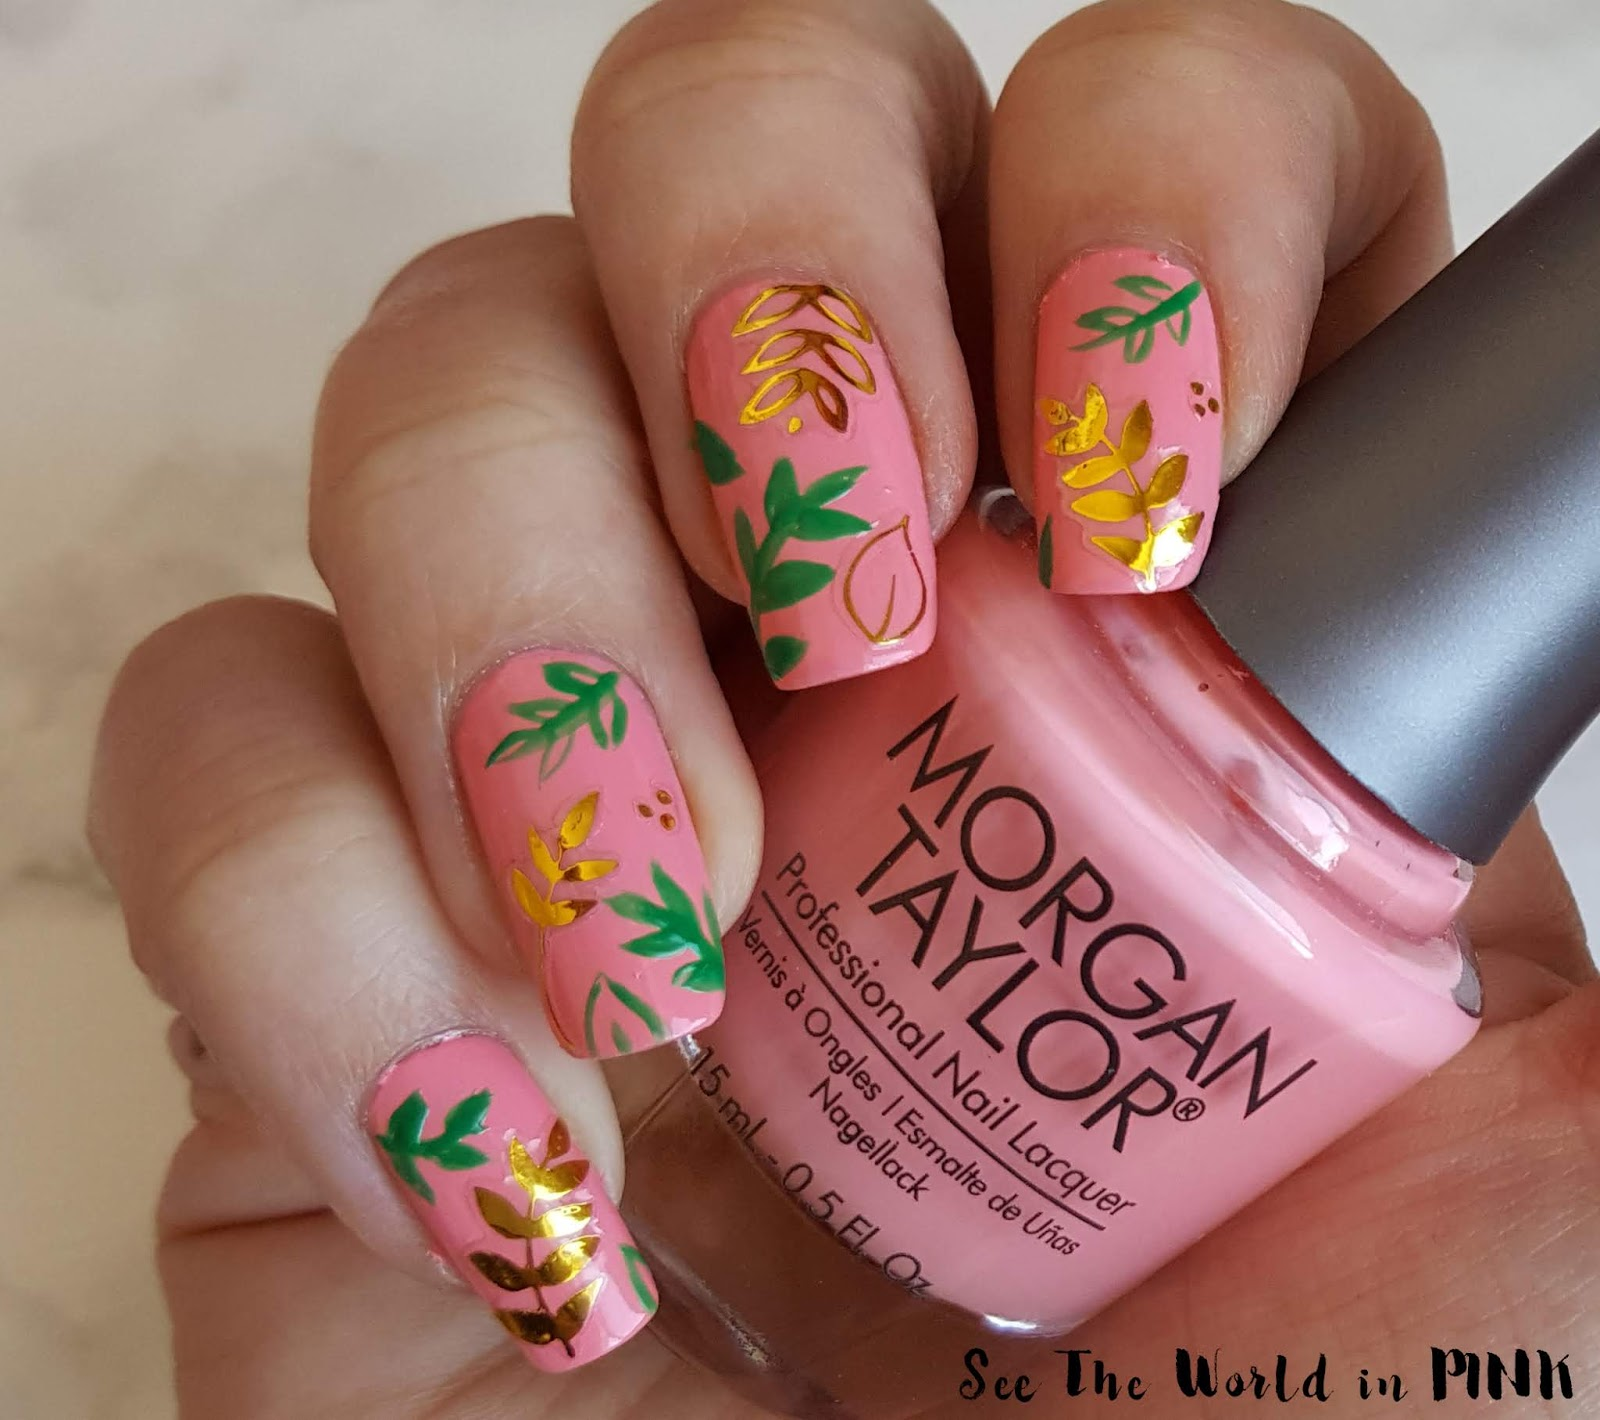 Manicure Monday - Green and Gold Foliage Nails!